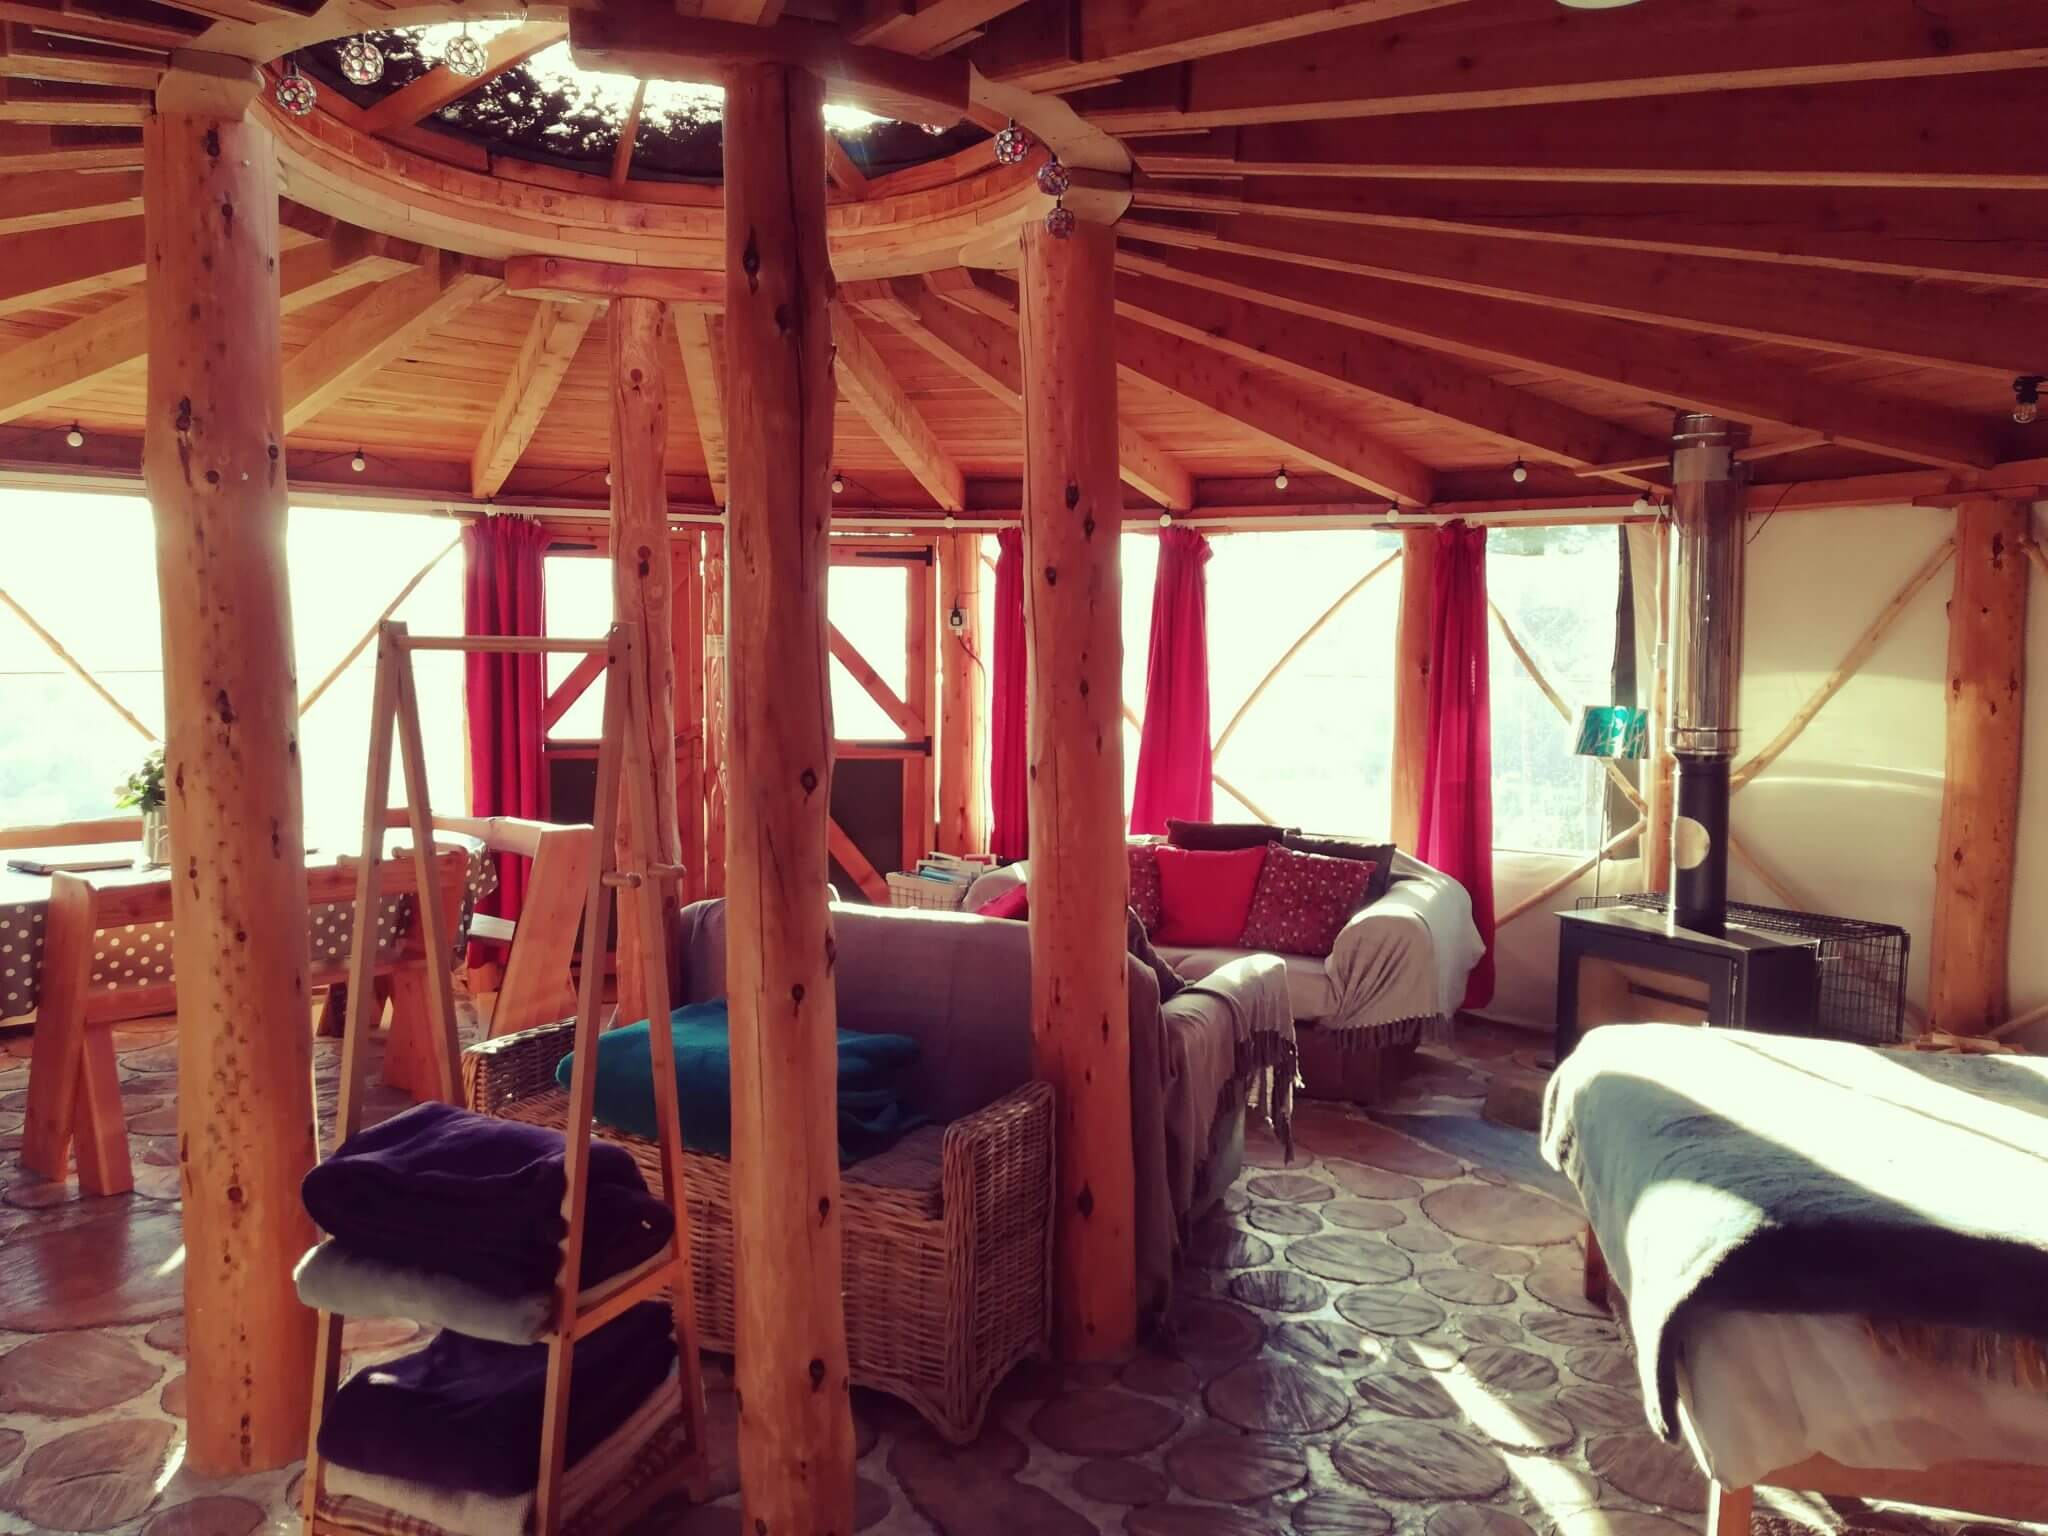 RUSTIC ROUNDHOUSE